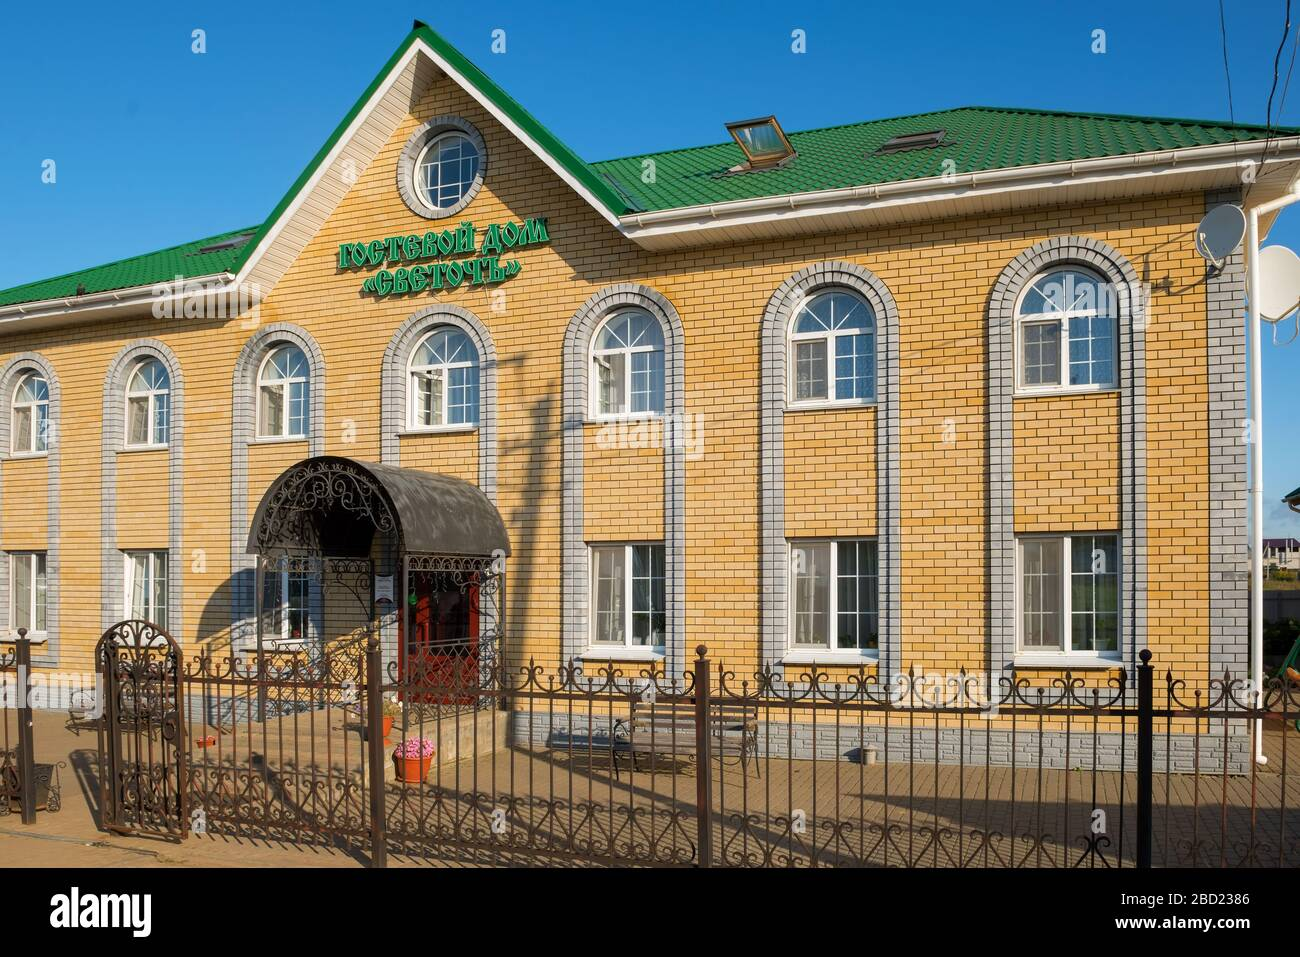 DIVEEVO, RUSSIA - AUGUST 25, 2019: Guest house Svetoch in the village of Diveevo Stock Photo